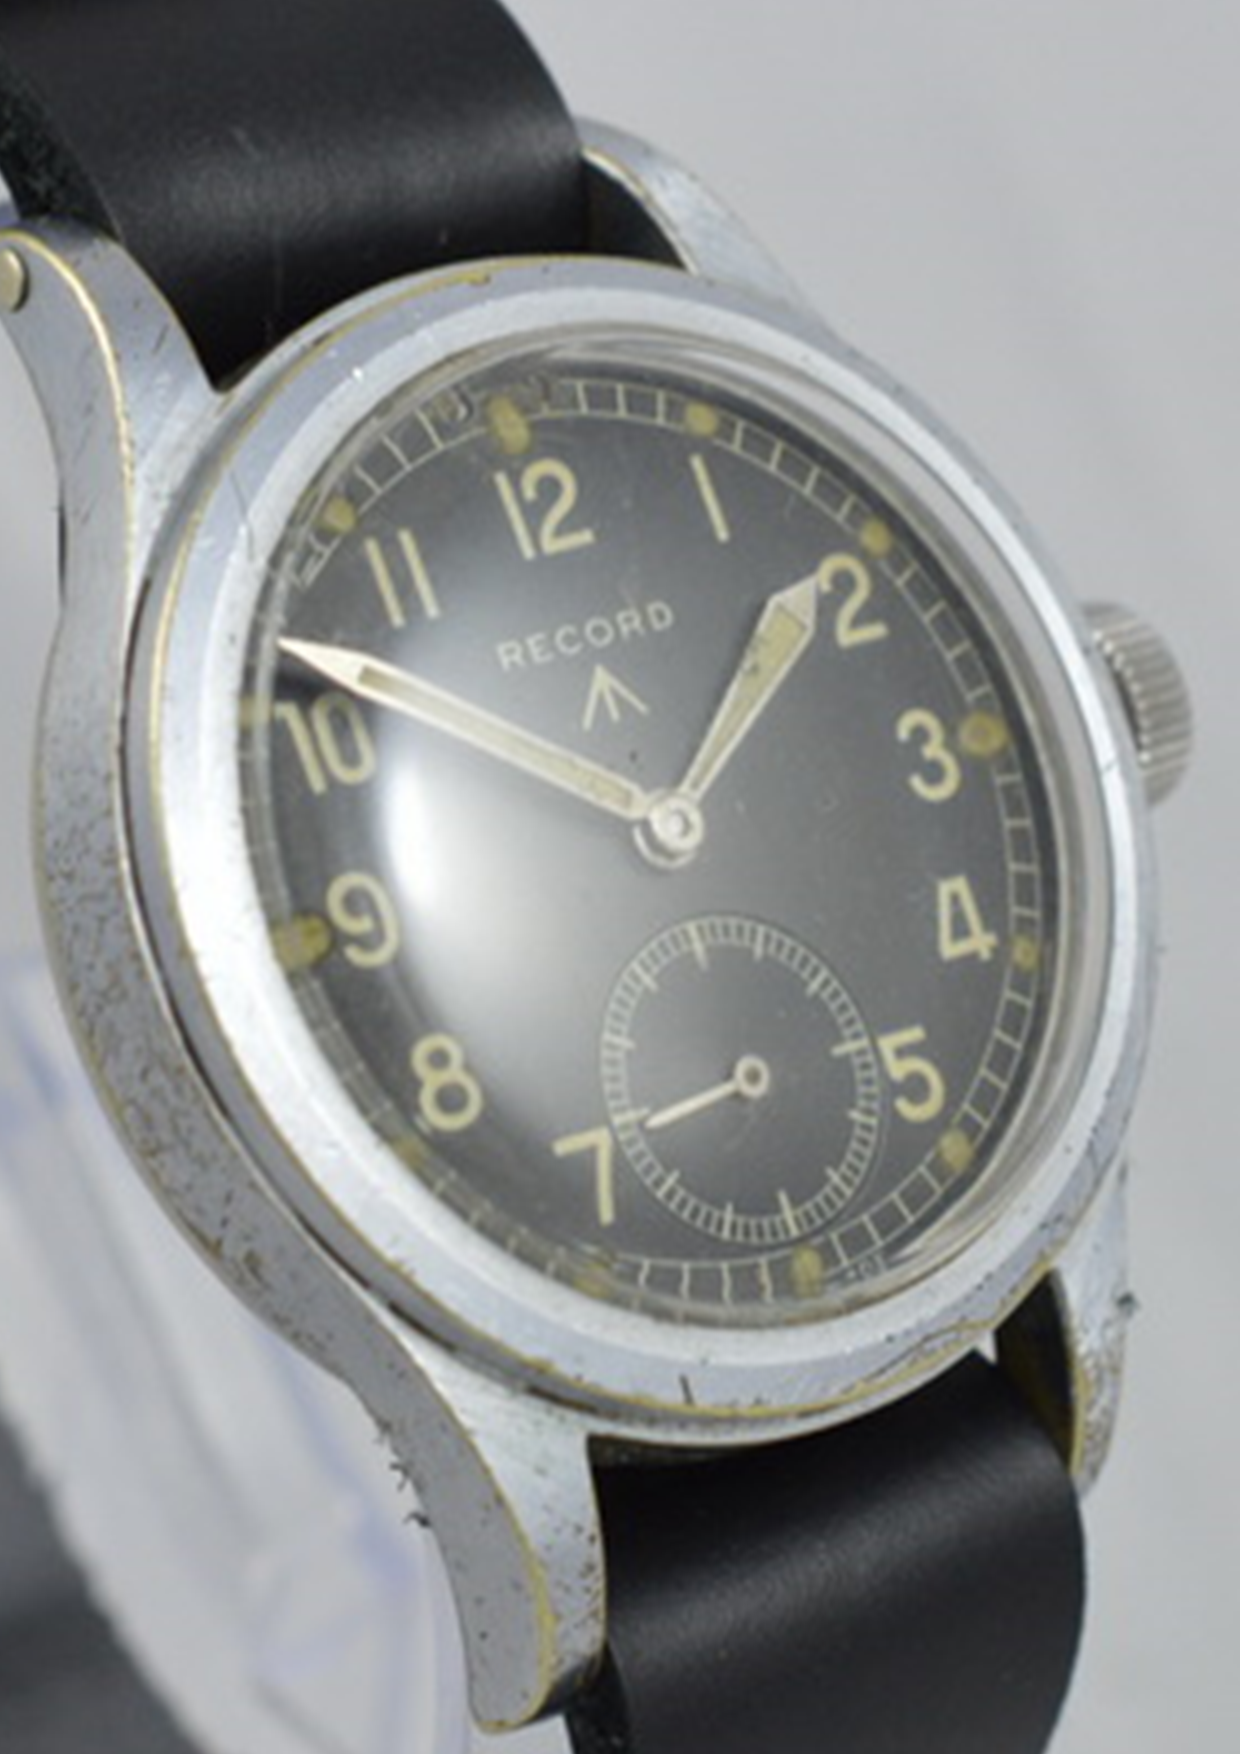 Military Watches by Kembery Antique Clocks Ltd